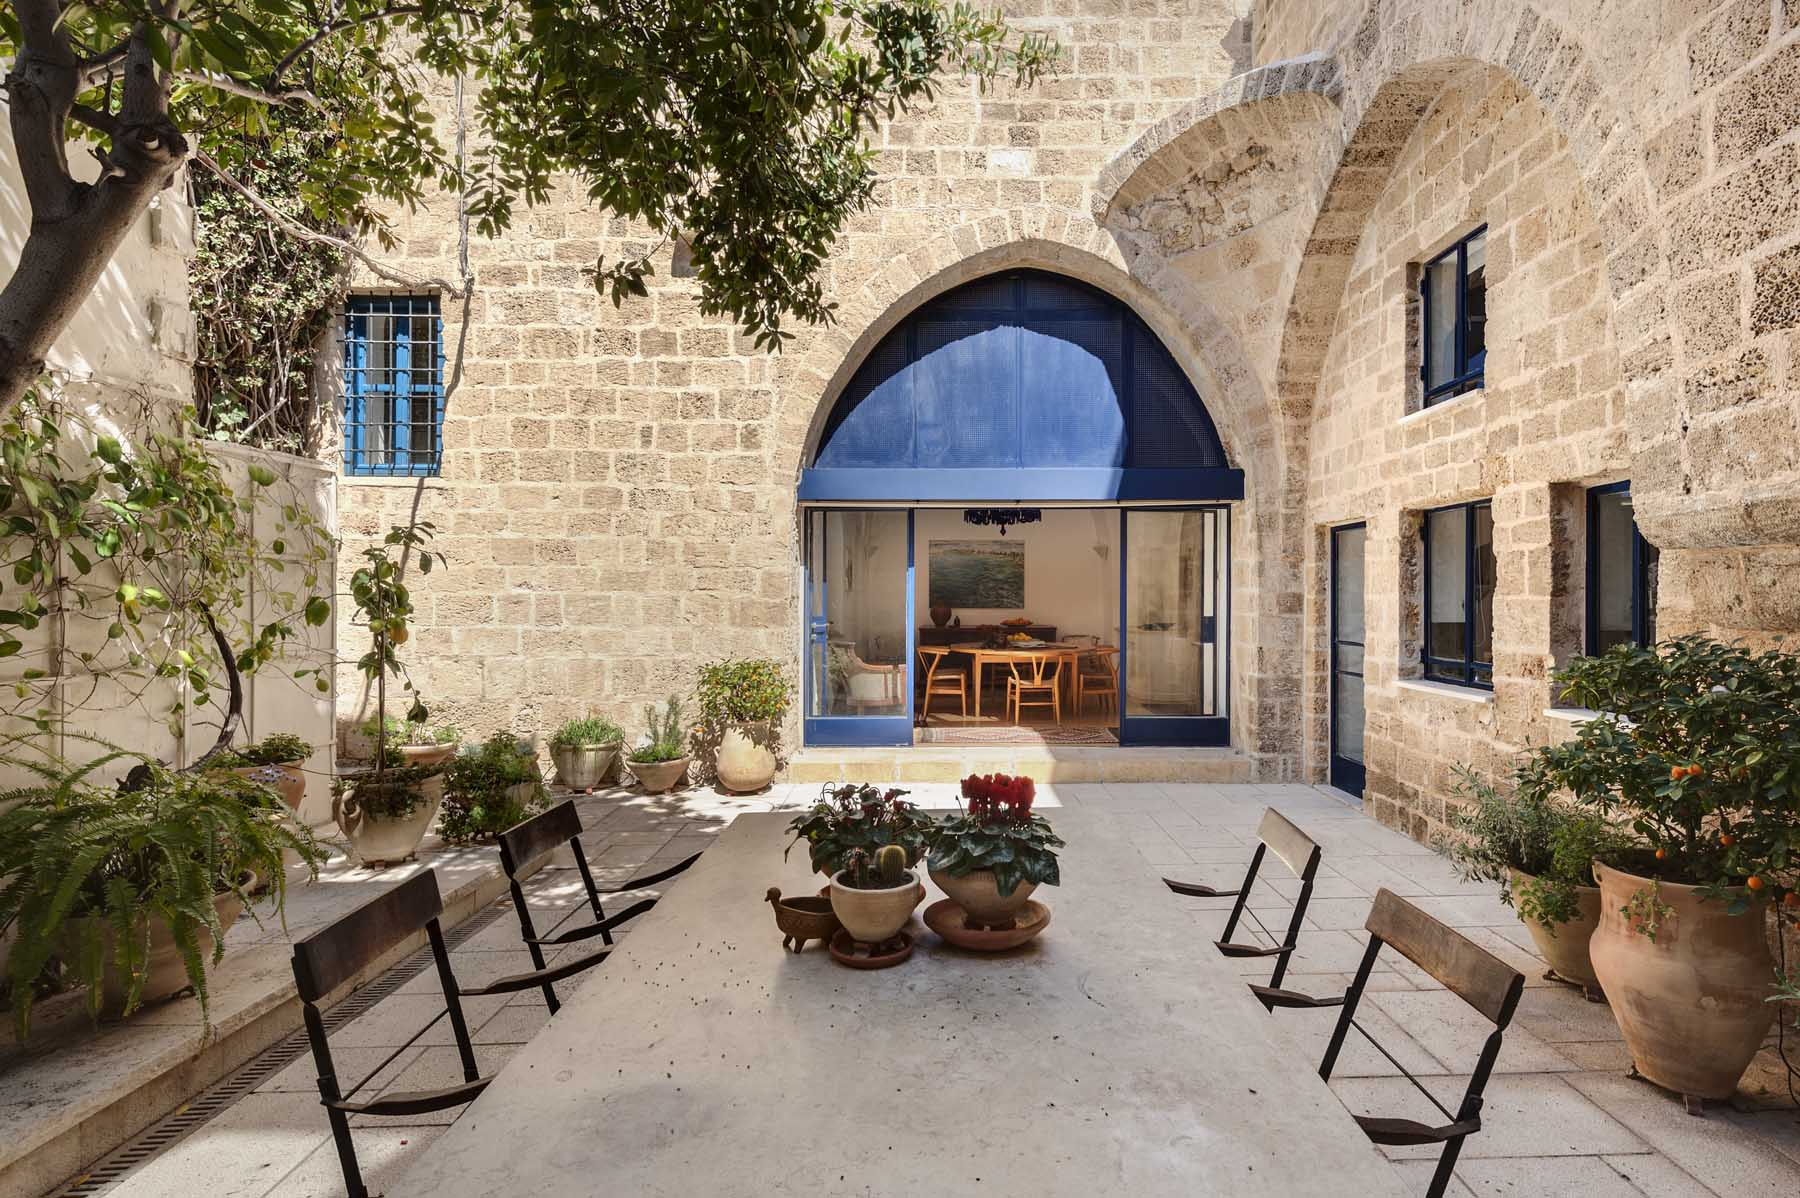 Maison unifamiliale pour l Vente à Luxury Home in The Old City of Historical Jaffa Jaffa, Israel Israël